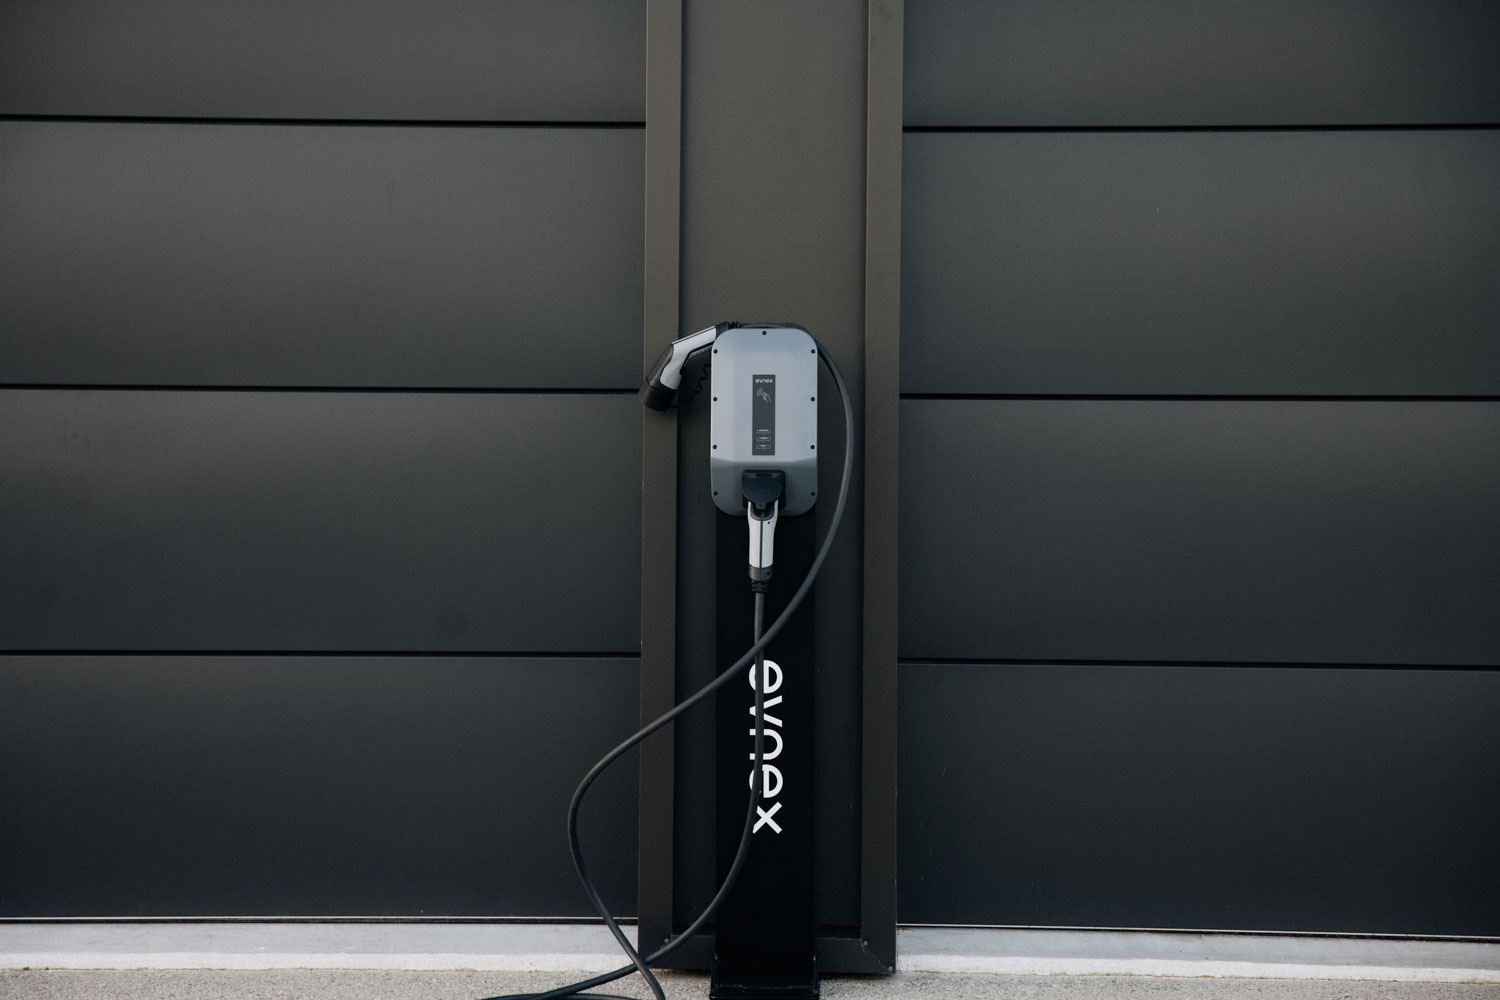 How-to-guide for Electric Vehicle Charging in Apartments & Parking Buildings